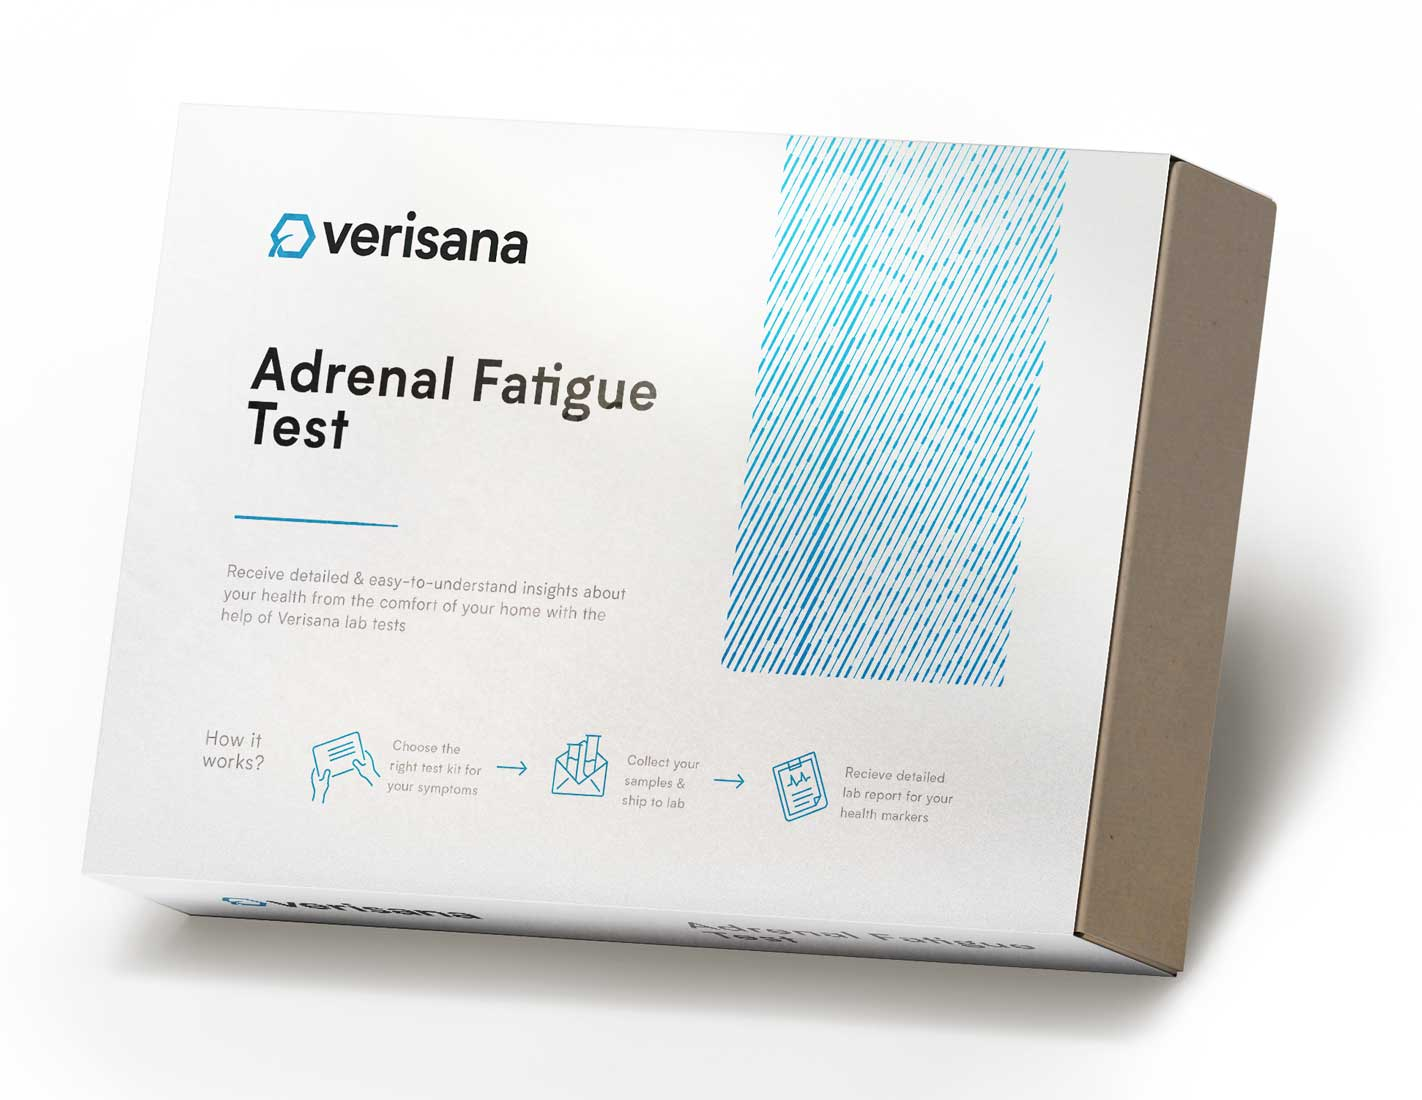 Adrenal fatigue test hormone saliva test for DHEA and diurnal cortisol